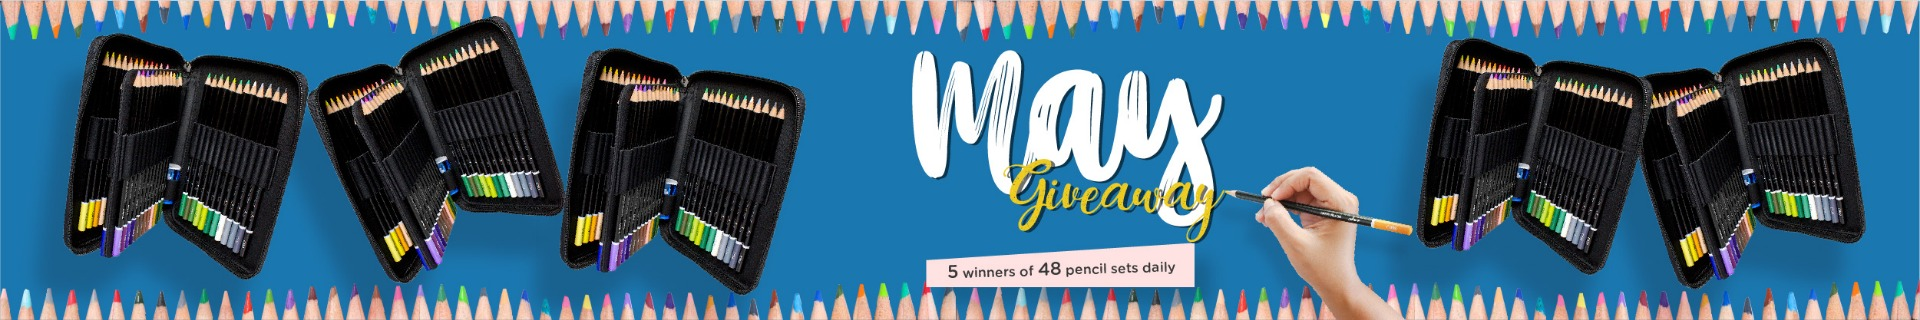 ColorIt 48 colored pencil giveaway